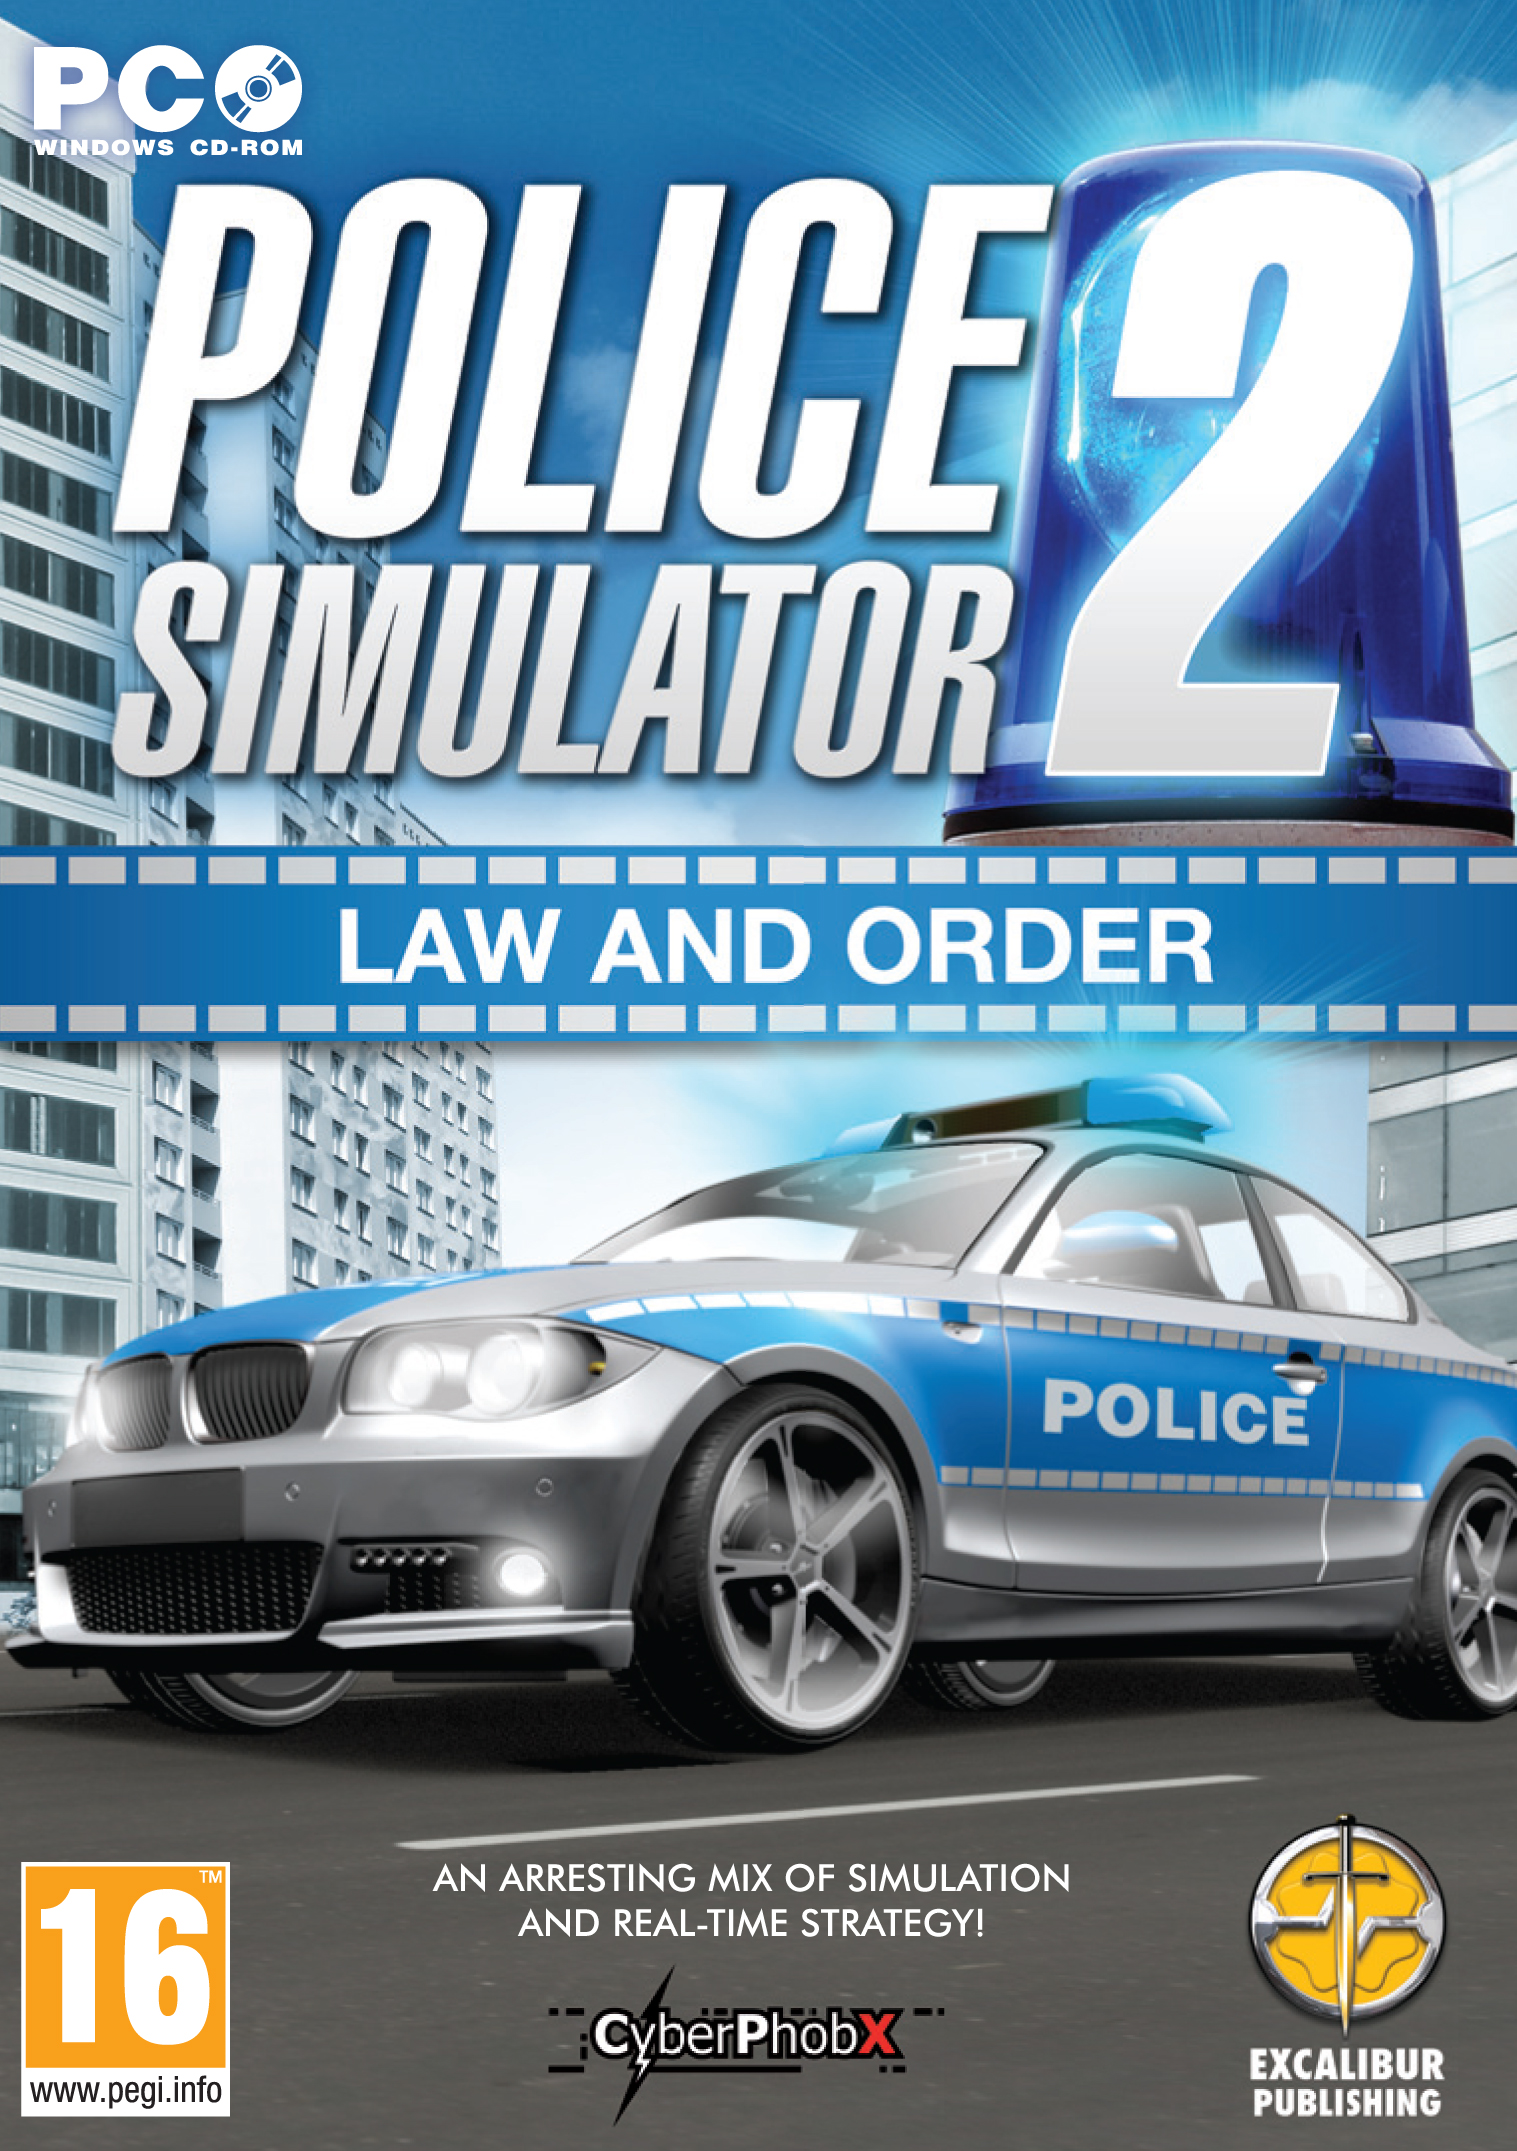 Police Simulator 2 Law and Order